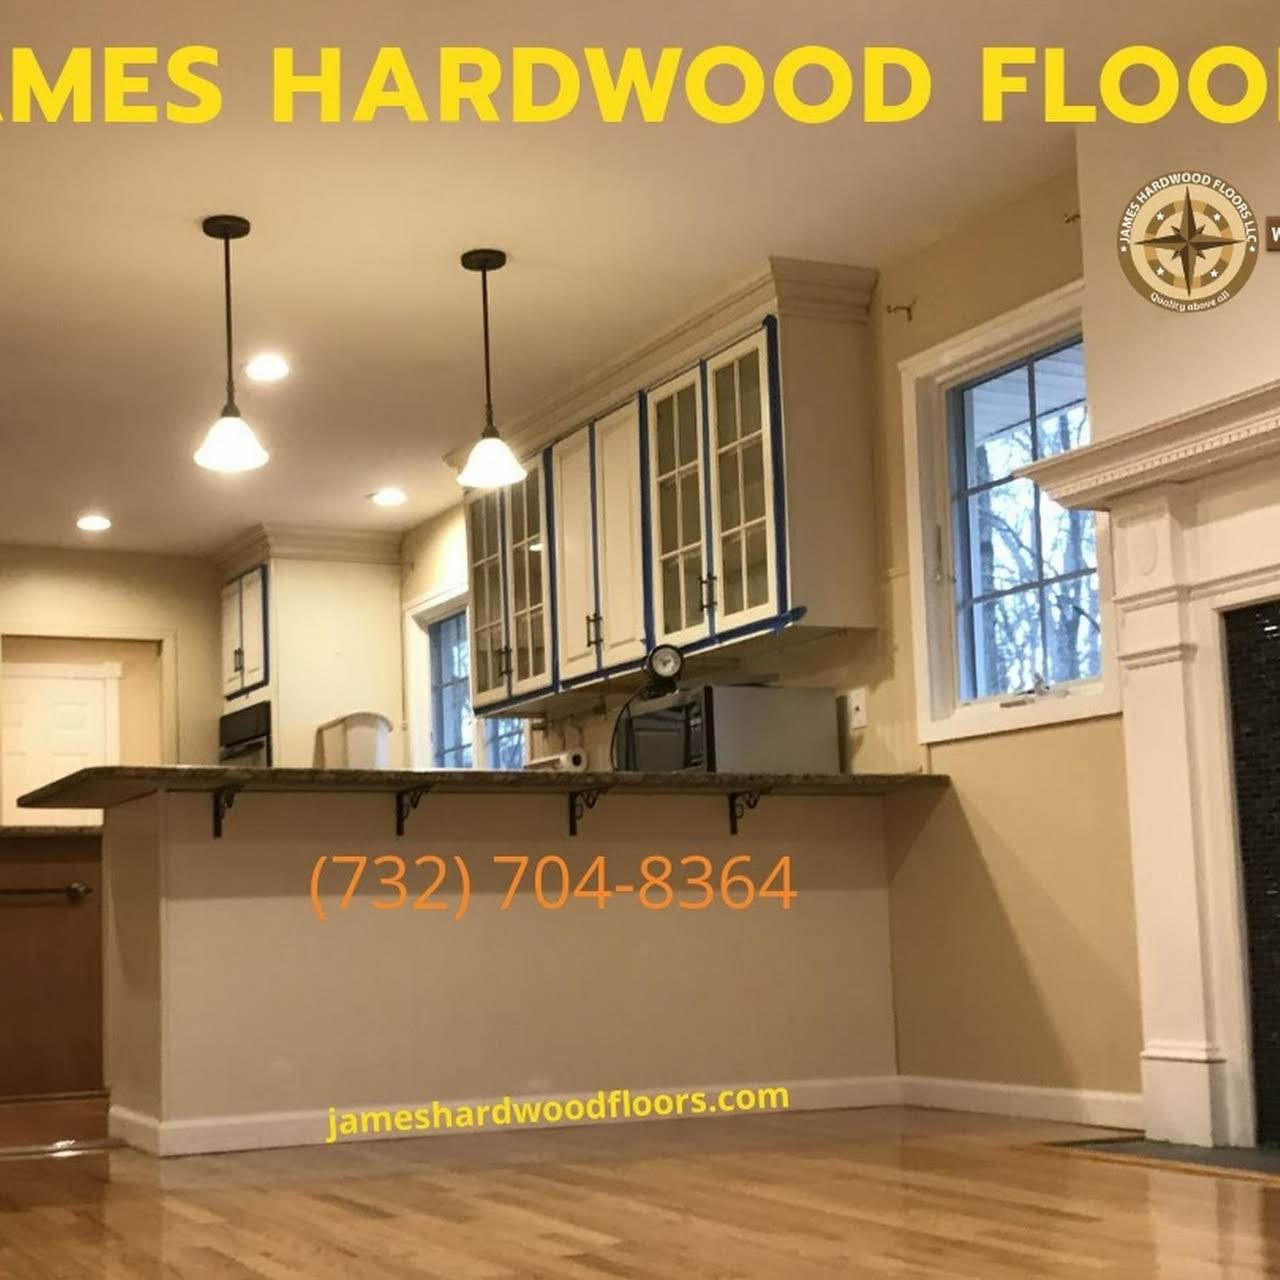 mohawk hardwood flooring warranty of james hardwood floorsa llc local contractor no retail price again for are you looking f